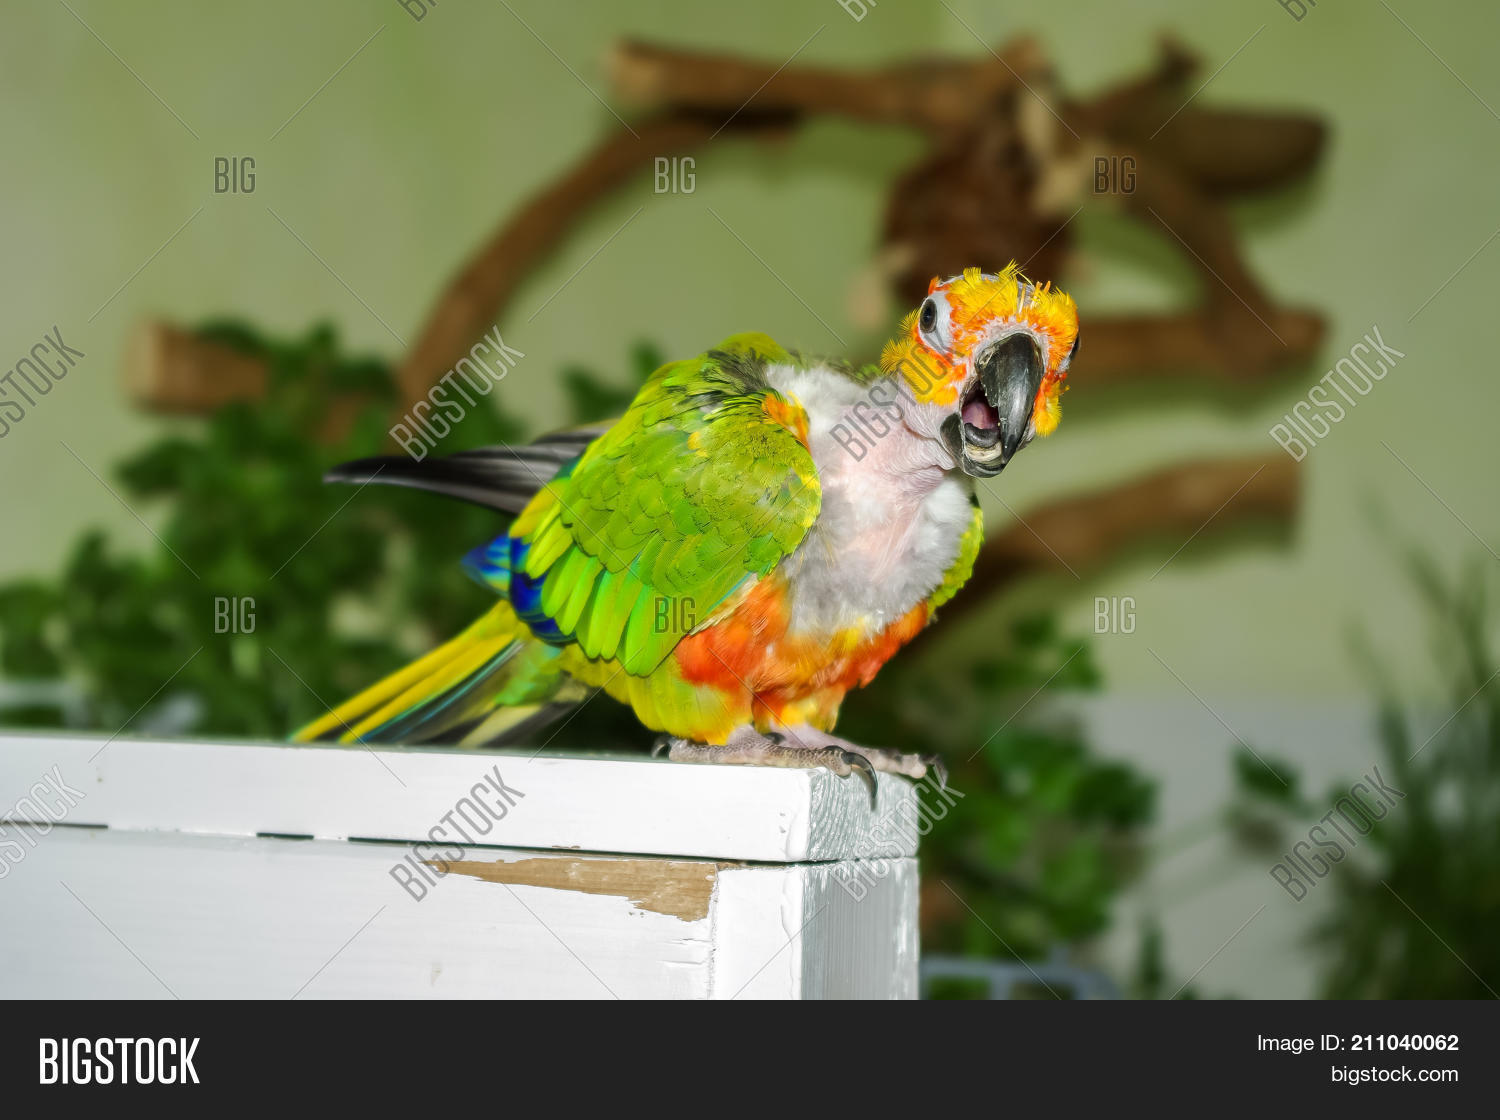 How can you call a parrot